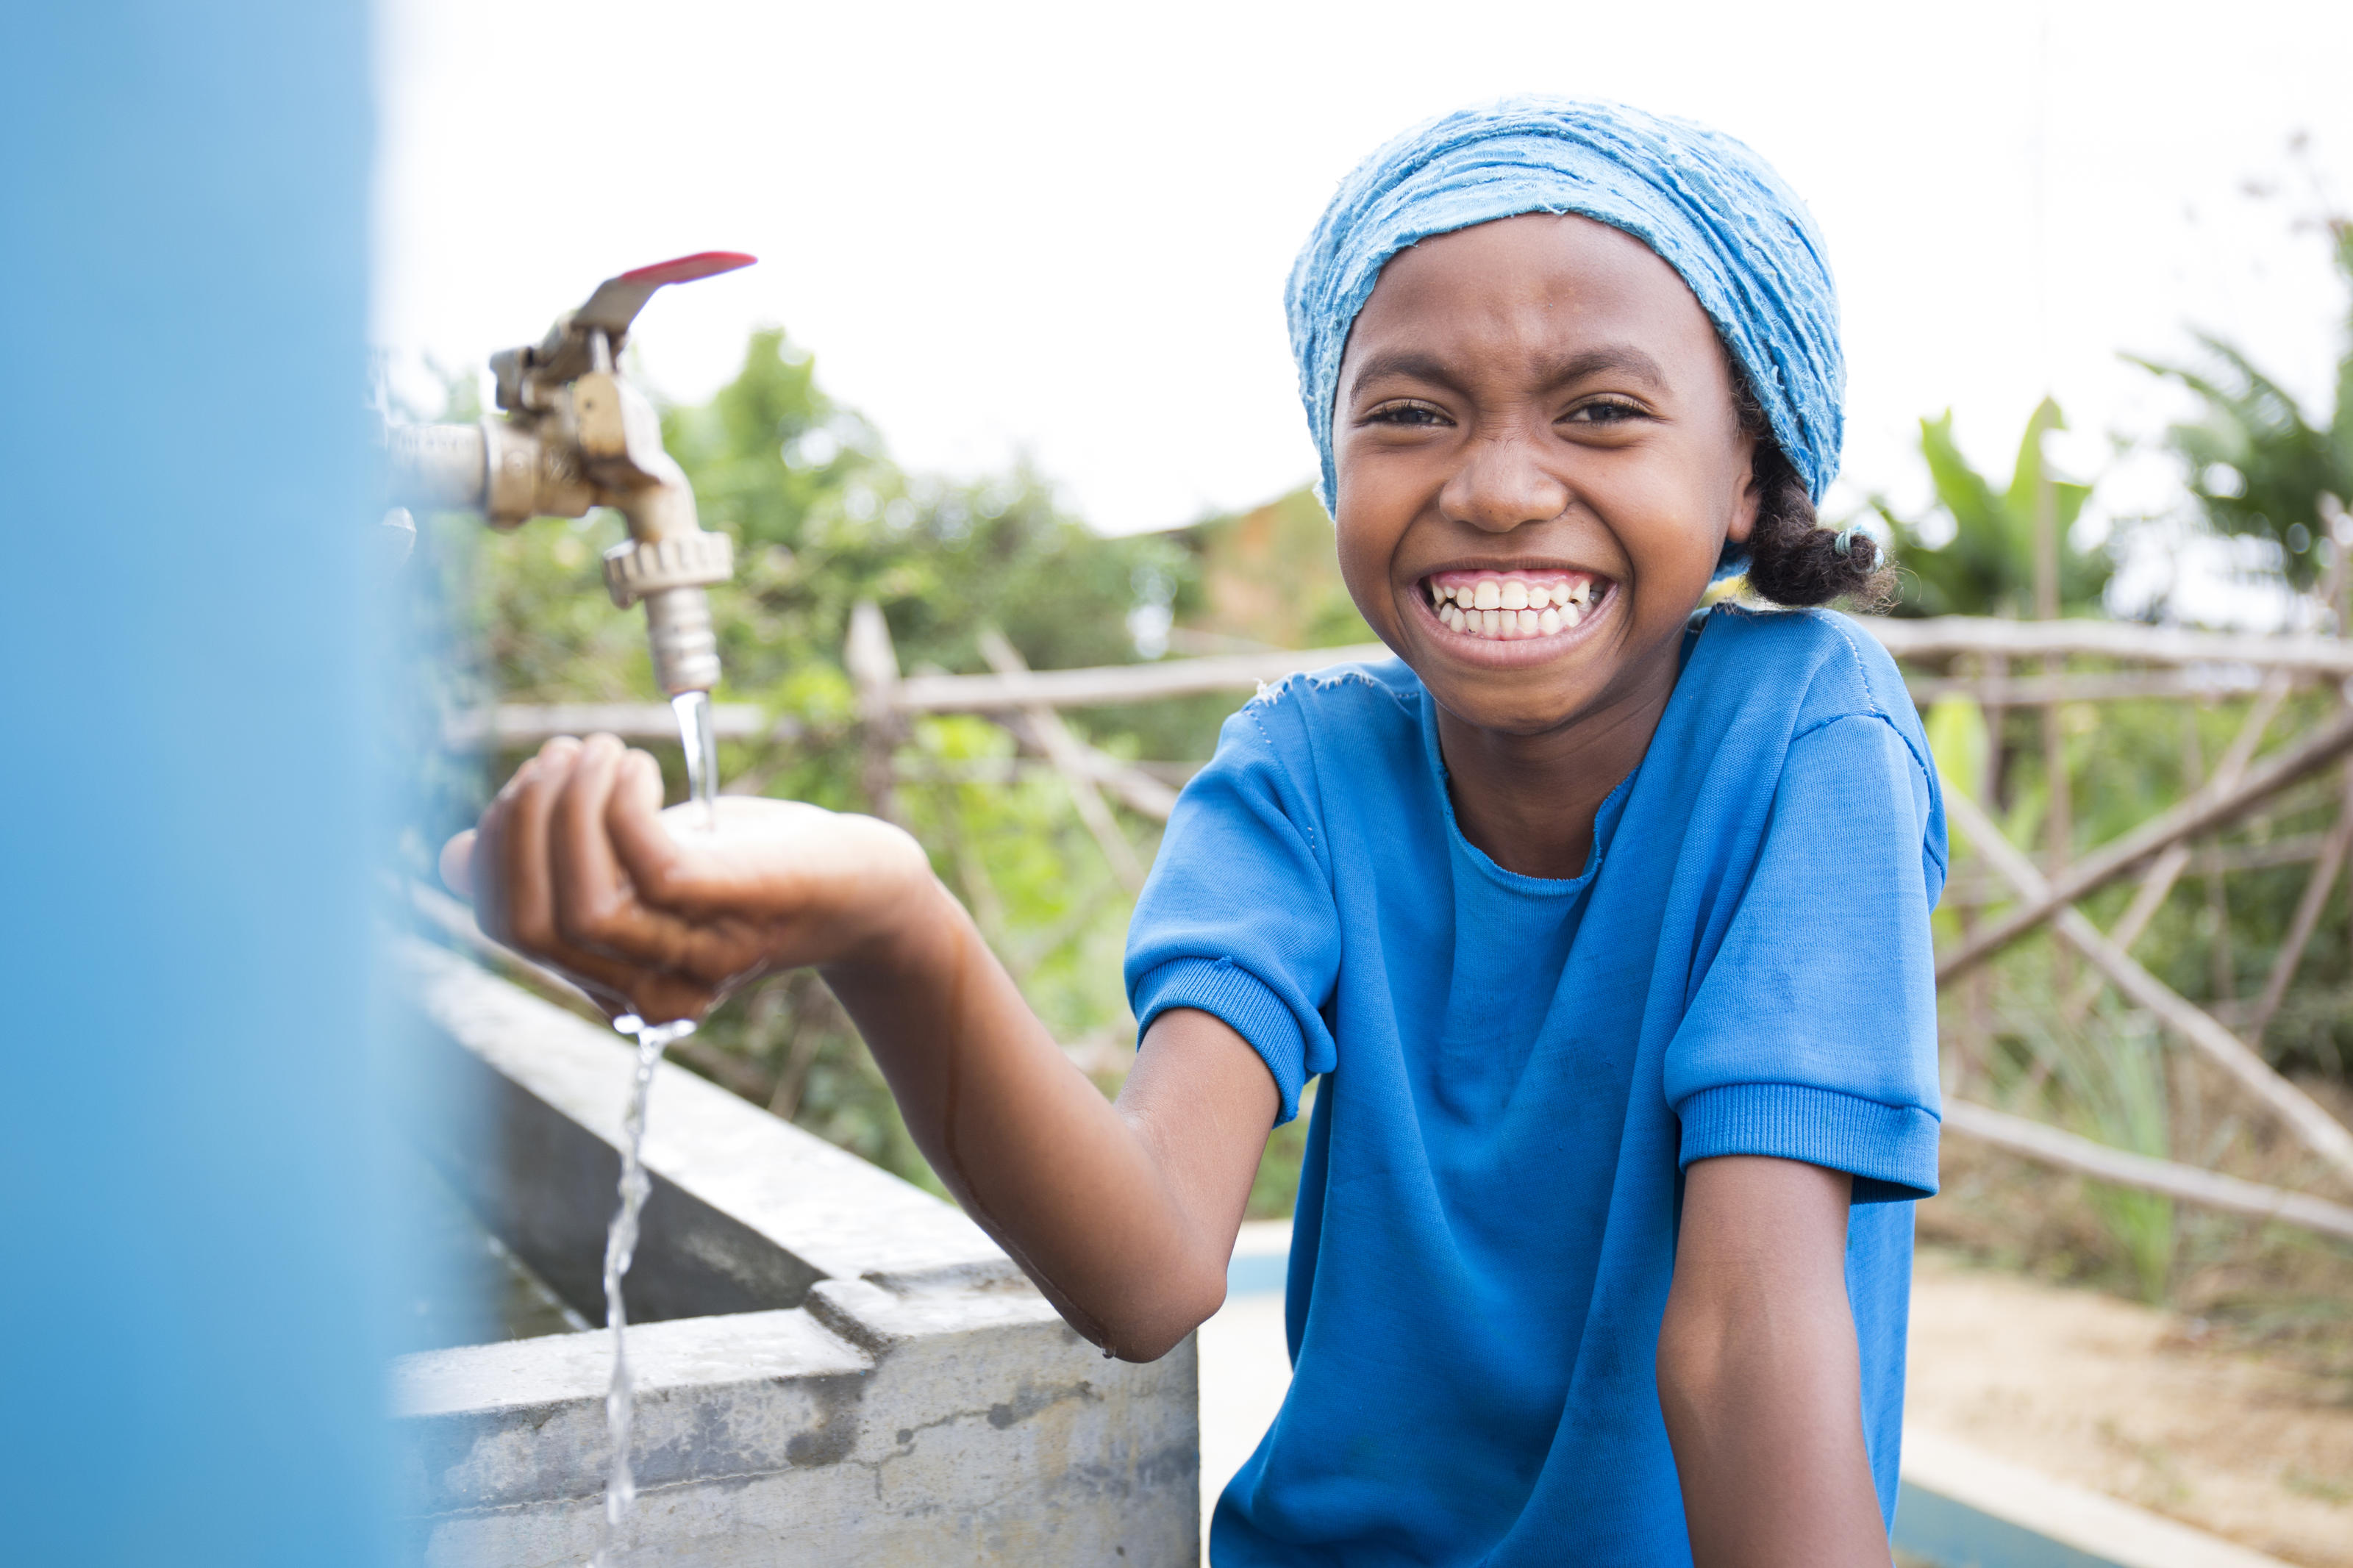 Neny, 10, student at the handwashing station of their sanitation block at Tsarafangitra Primary School, Tsarafangitra Village, Belavabary Commune, Moramanga District, Alaotra Mangoro Region, Madagascar, May 2018.